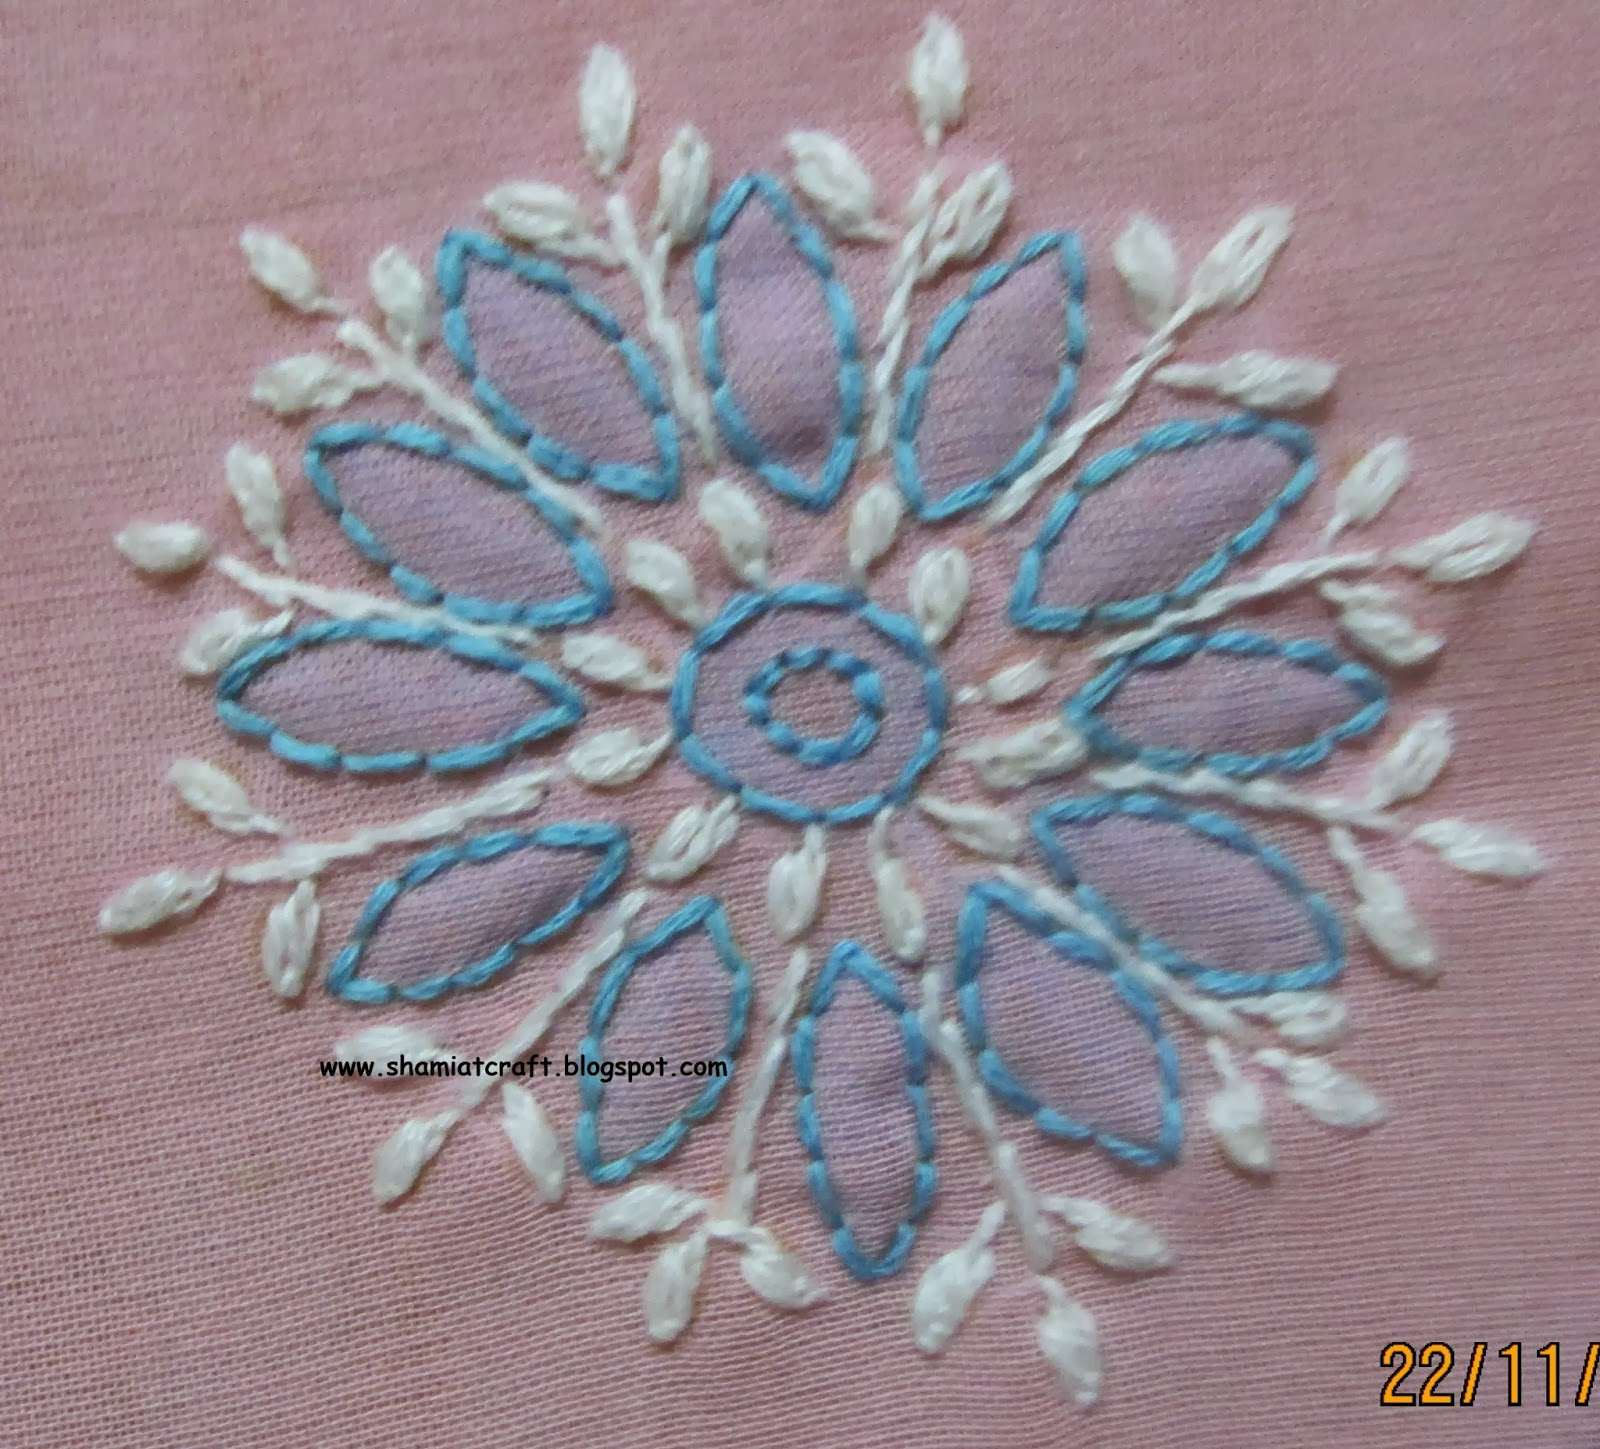 My Craft Works Chikankari Motifs